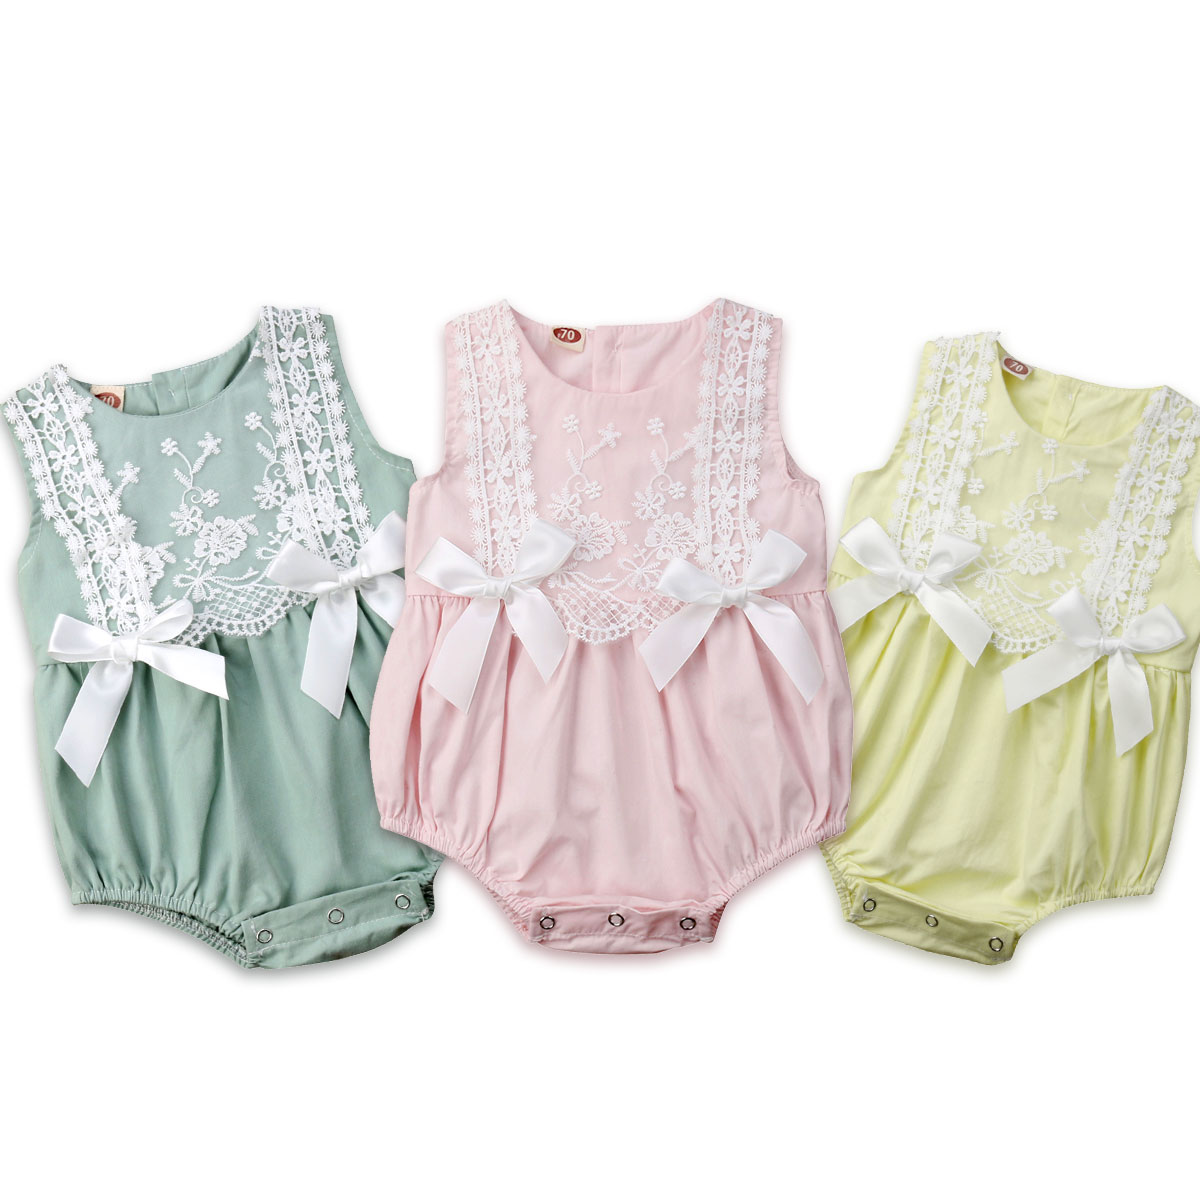 Infant Newborn Baby Girls Clothing Lace Ruffles Rompers Jumpsuit Cute Bow Sunsuit Summer 2019 Baby Girls Costume